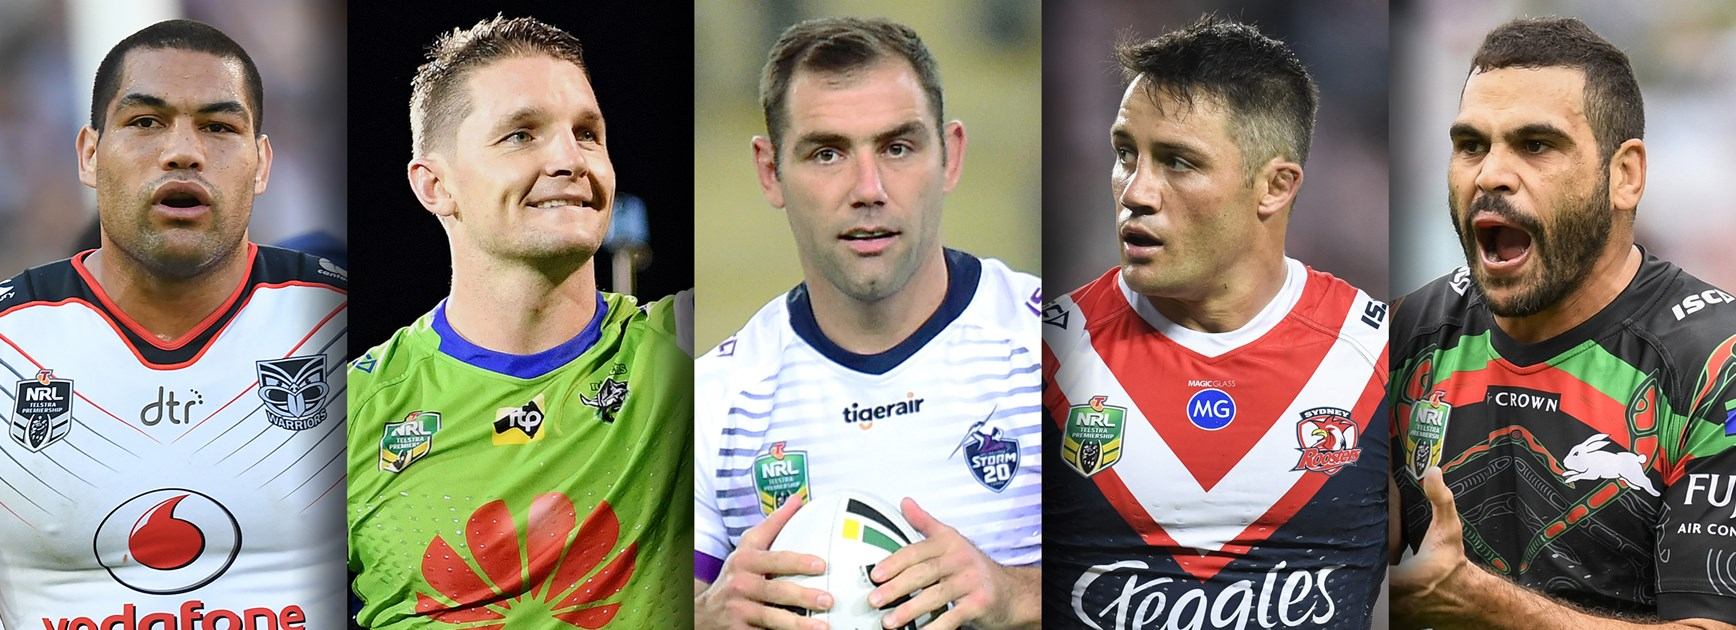 NRL milestones to watch out for in 2019